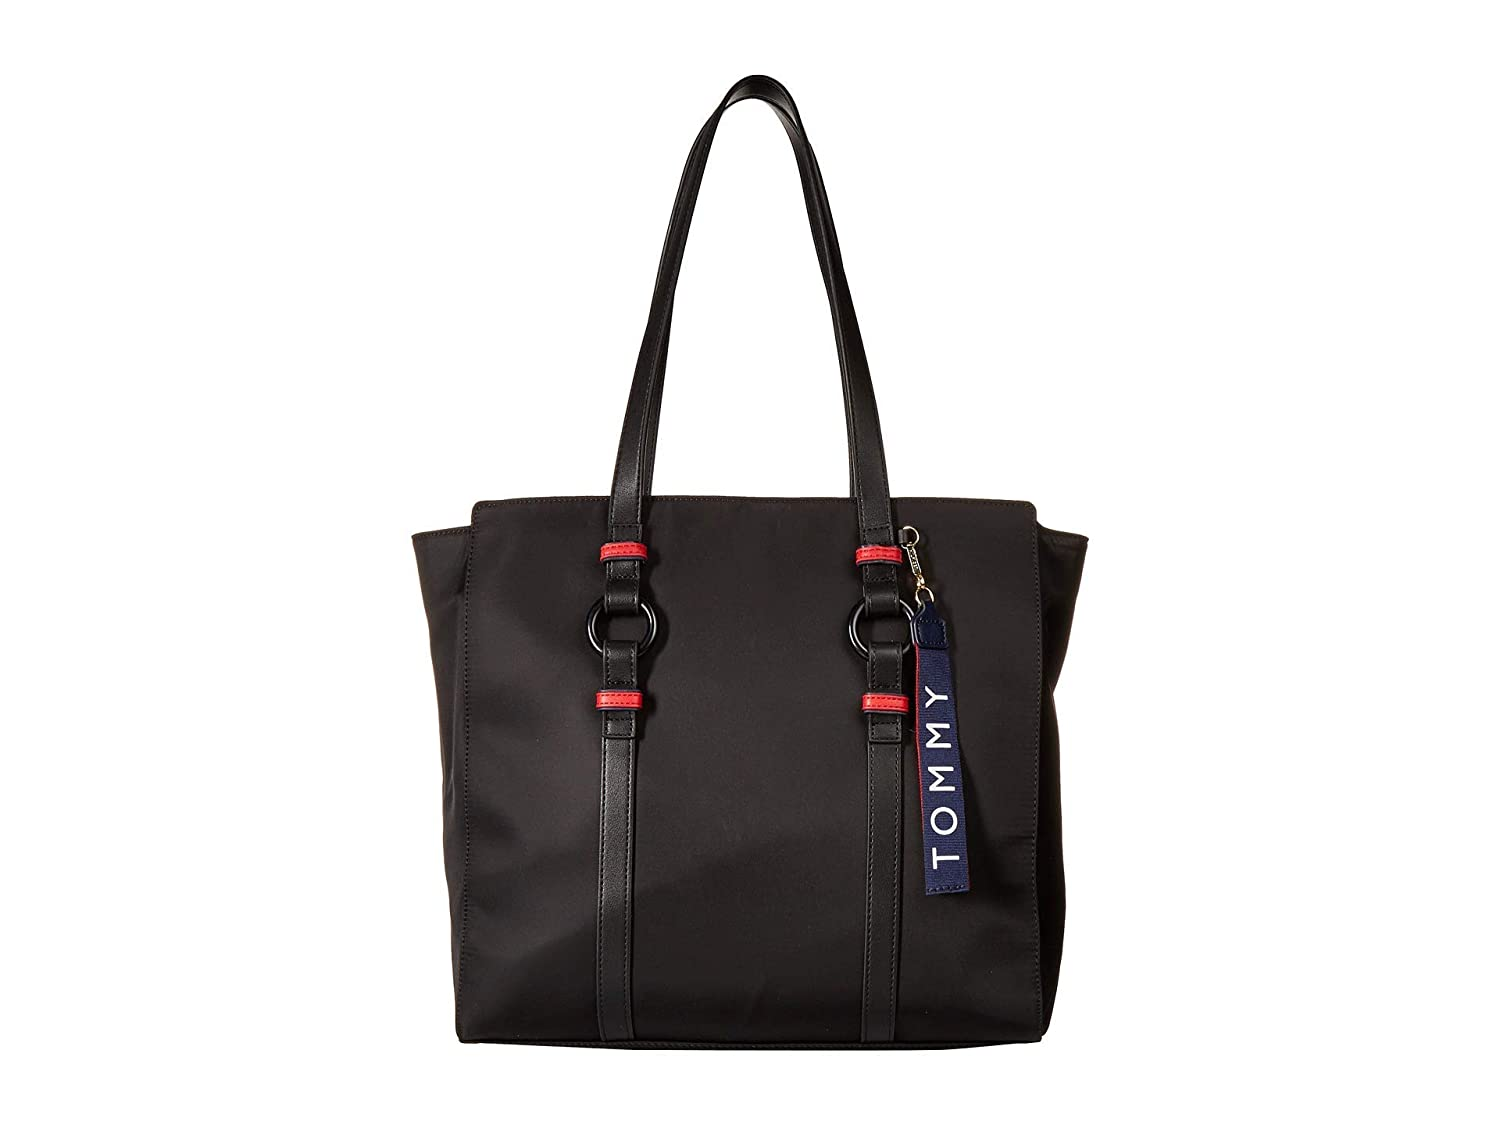 buy special for shoe hot new products Amazon.com: Tommy Hilfiger Women's Leona Tote Black One Size ...